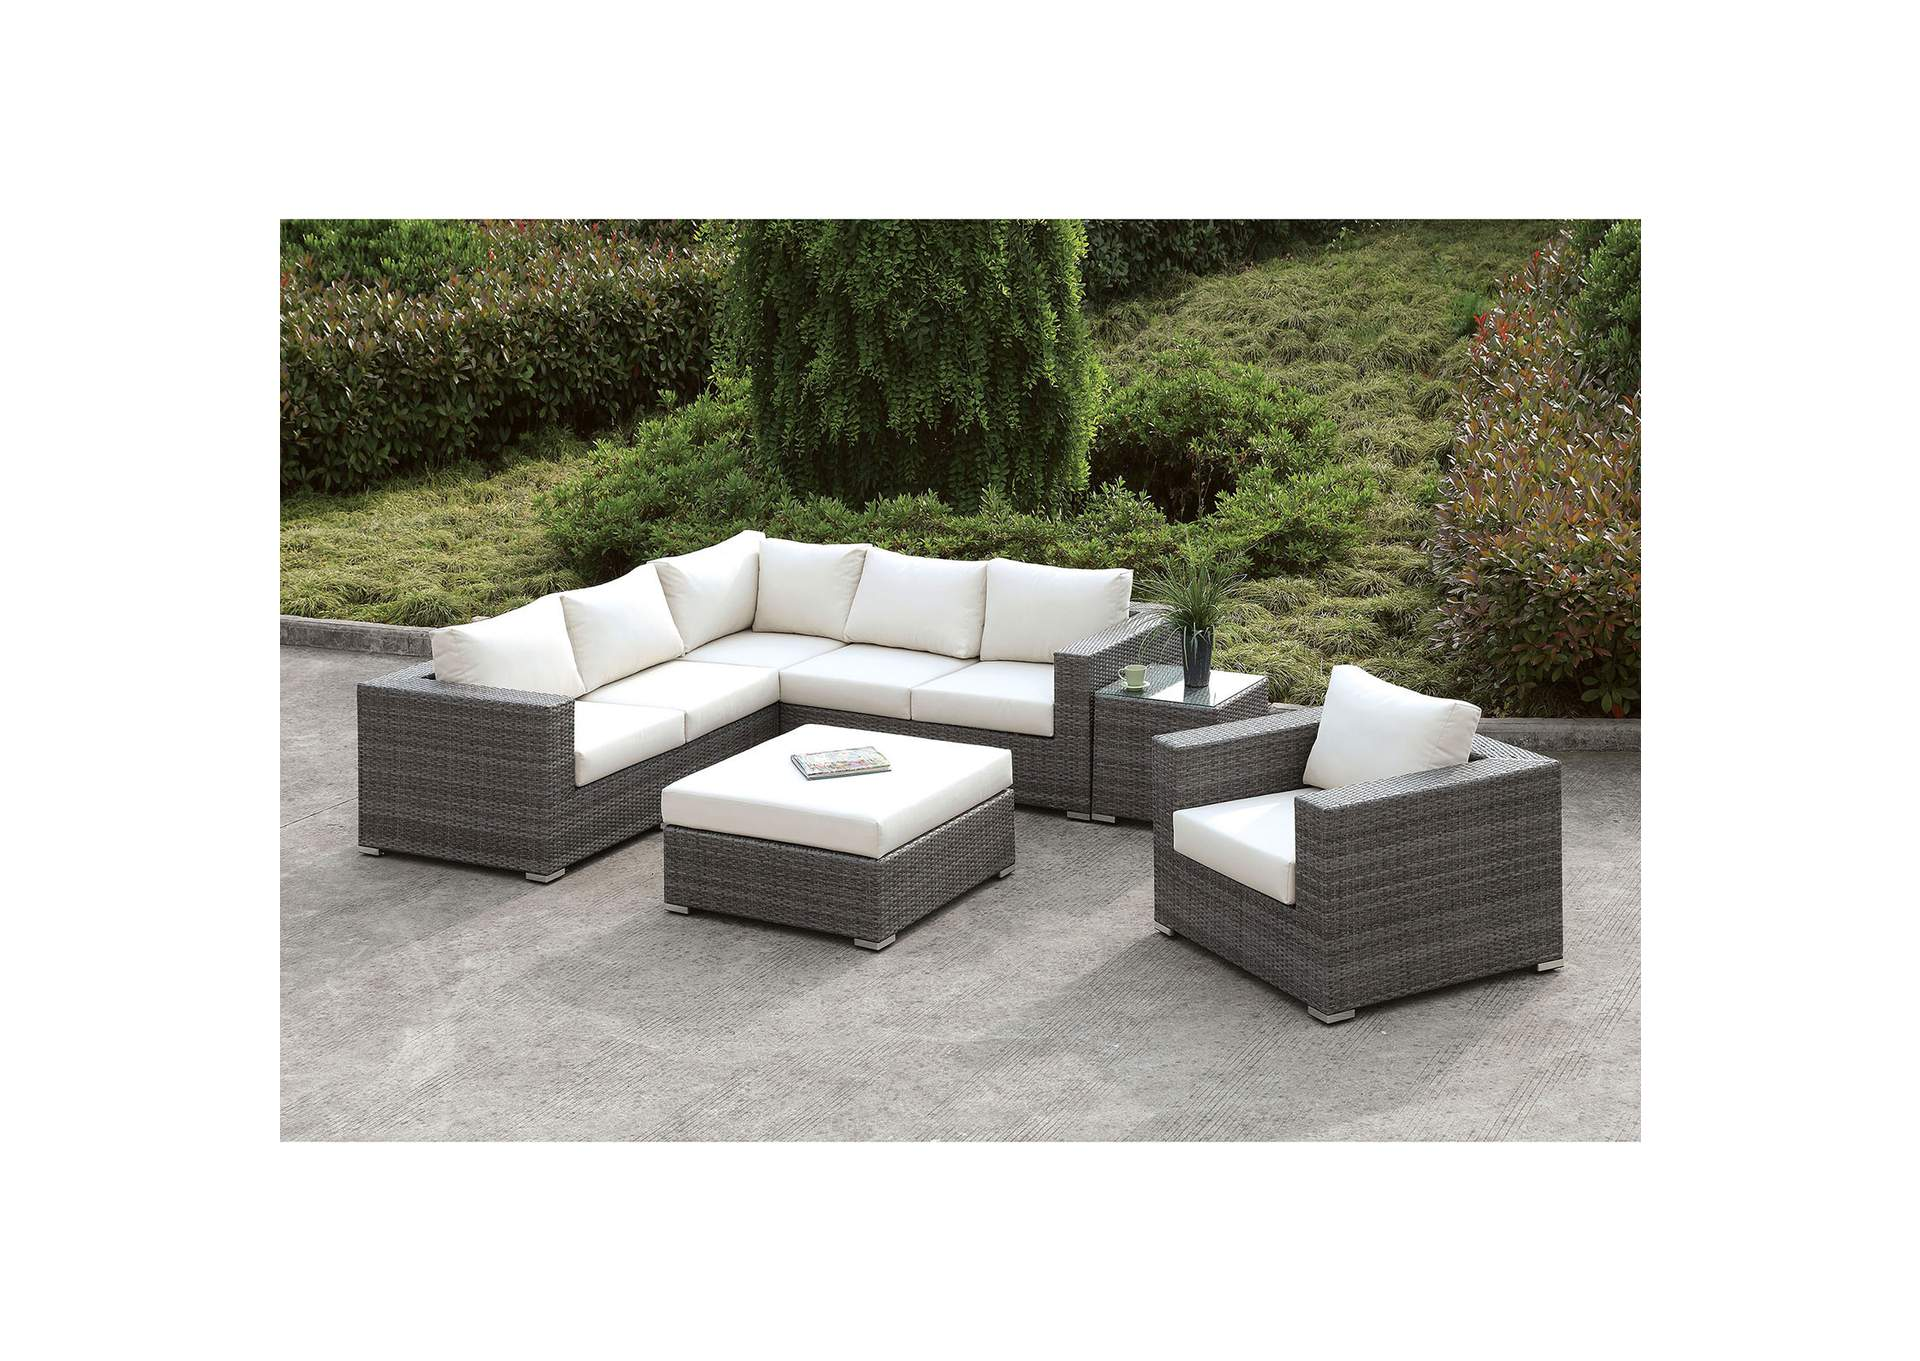 Somani Light Gray/Ivory Wicker L-Sectional  w/Chair, Coffee Table & End Table,Furniture of America